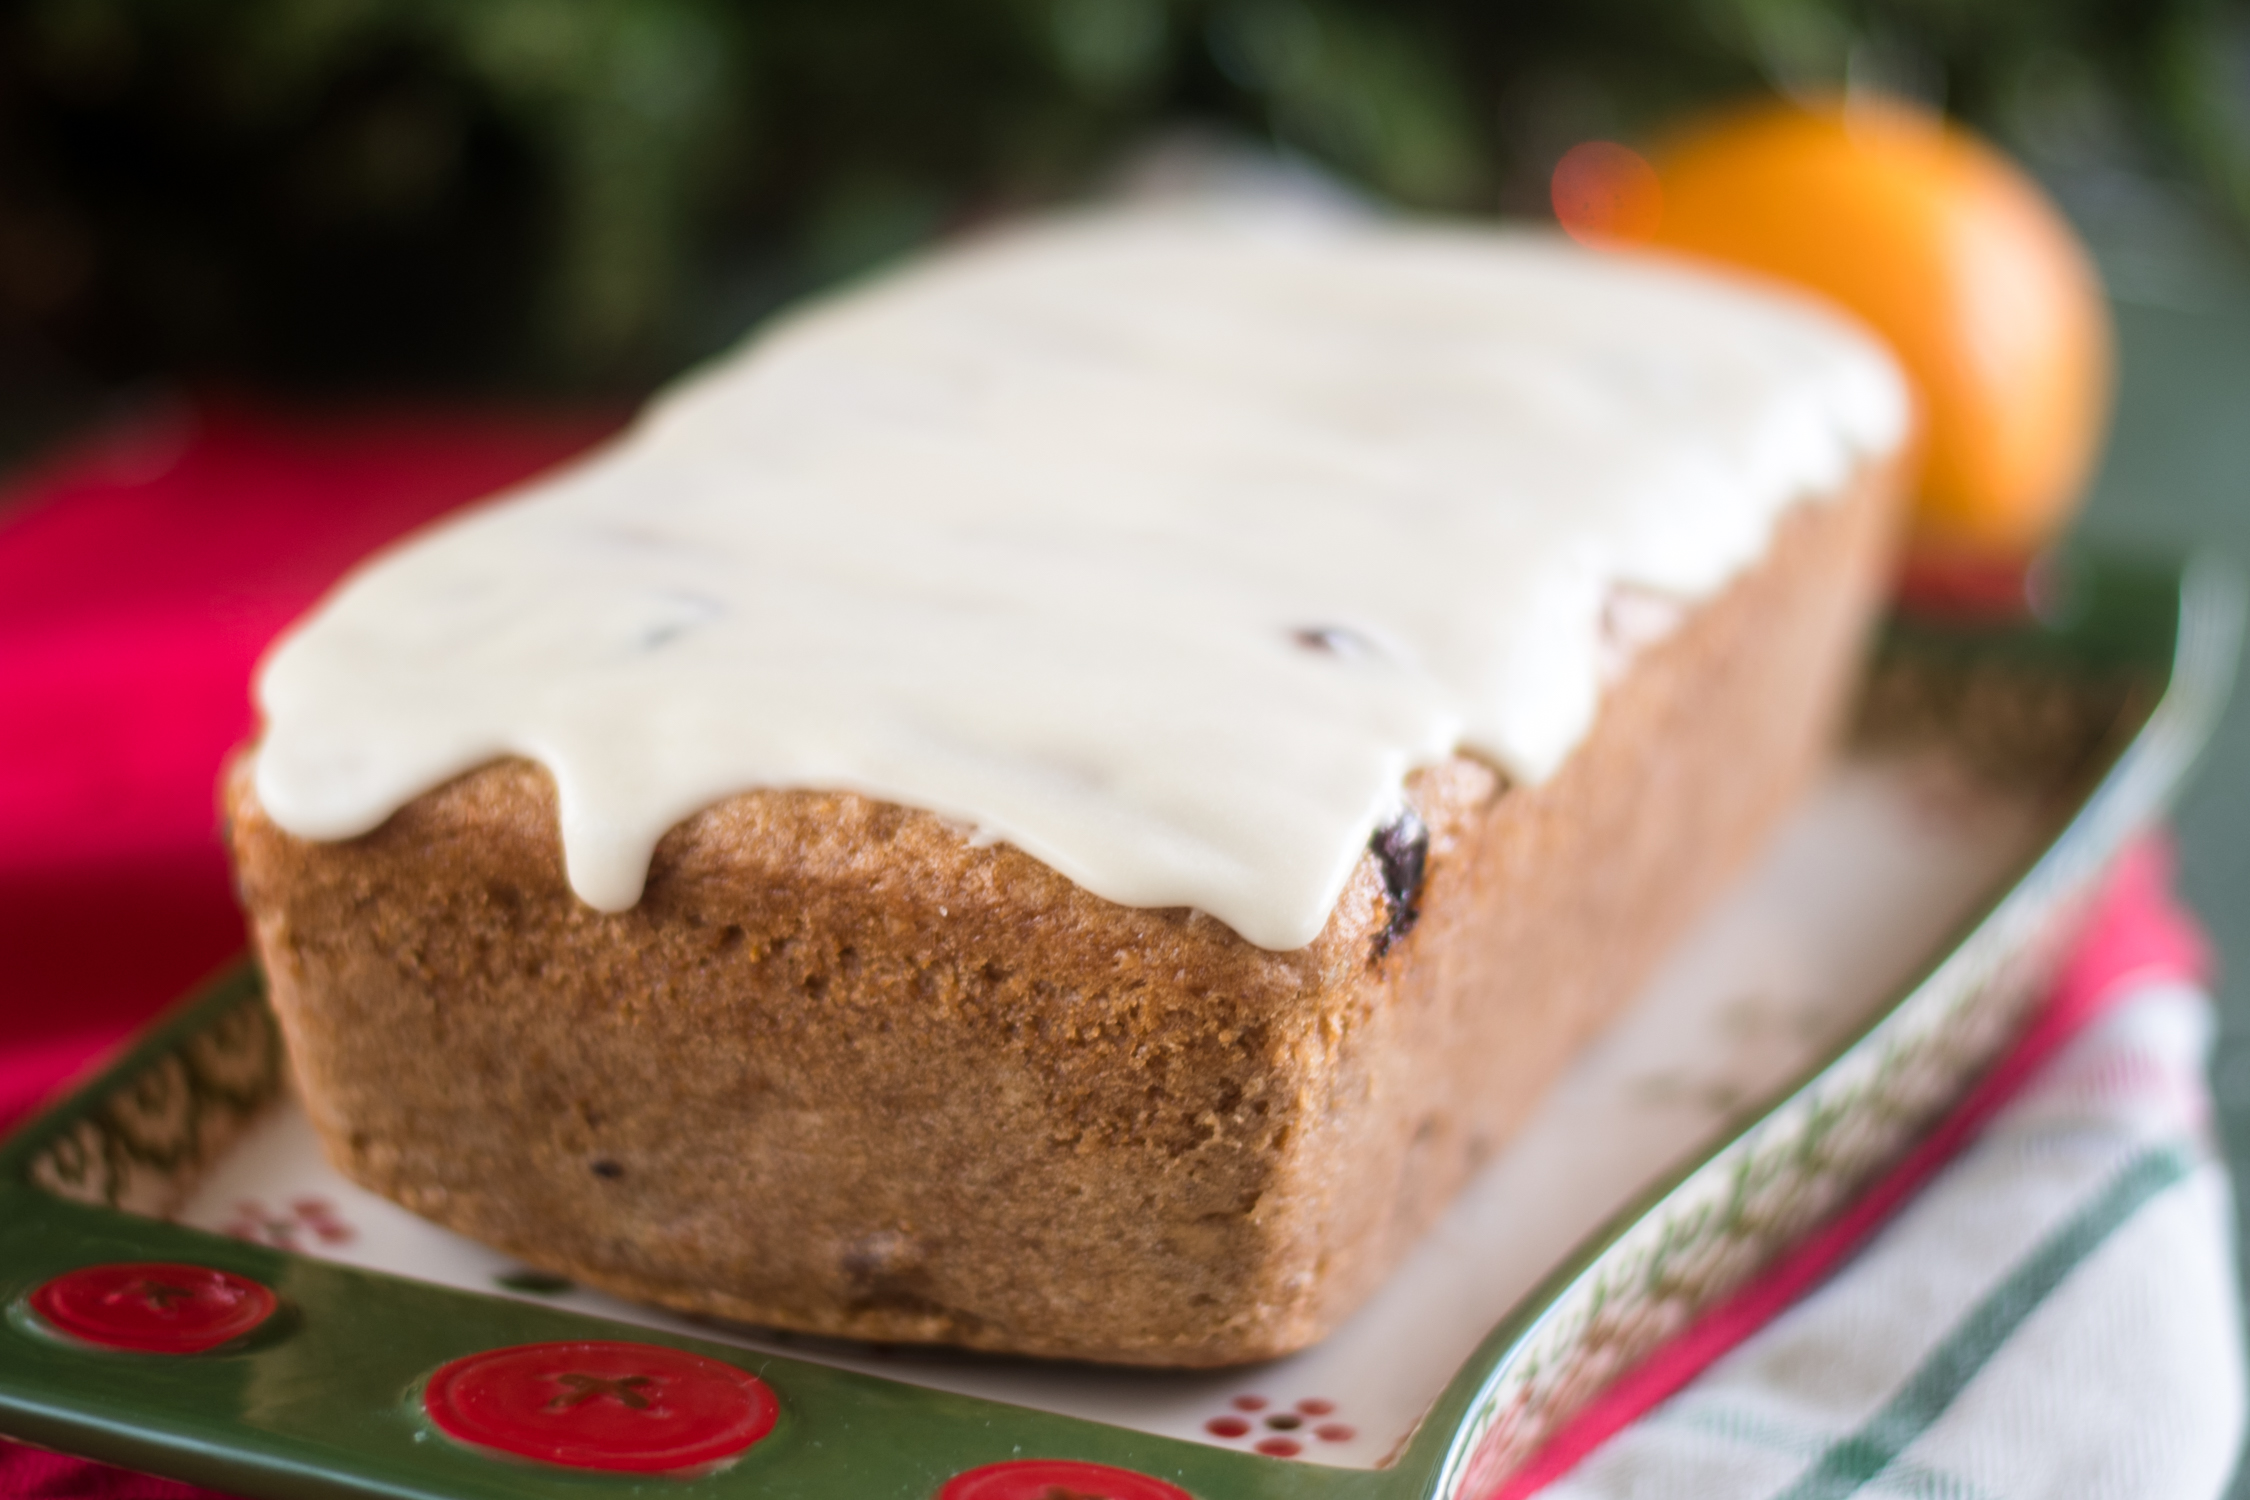 This Vegan Cranberry Orange Pound Cake is so moist and tender. It is hard to even detect that this festive pound cake is completely vegan.